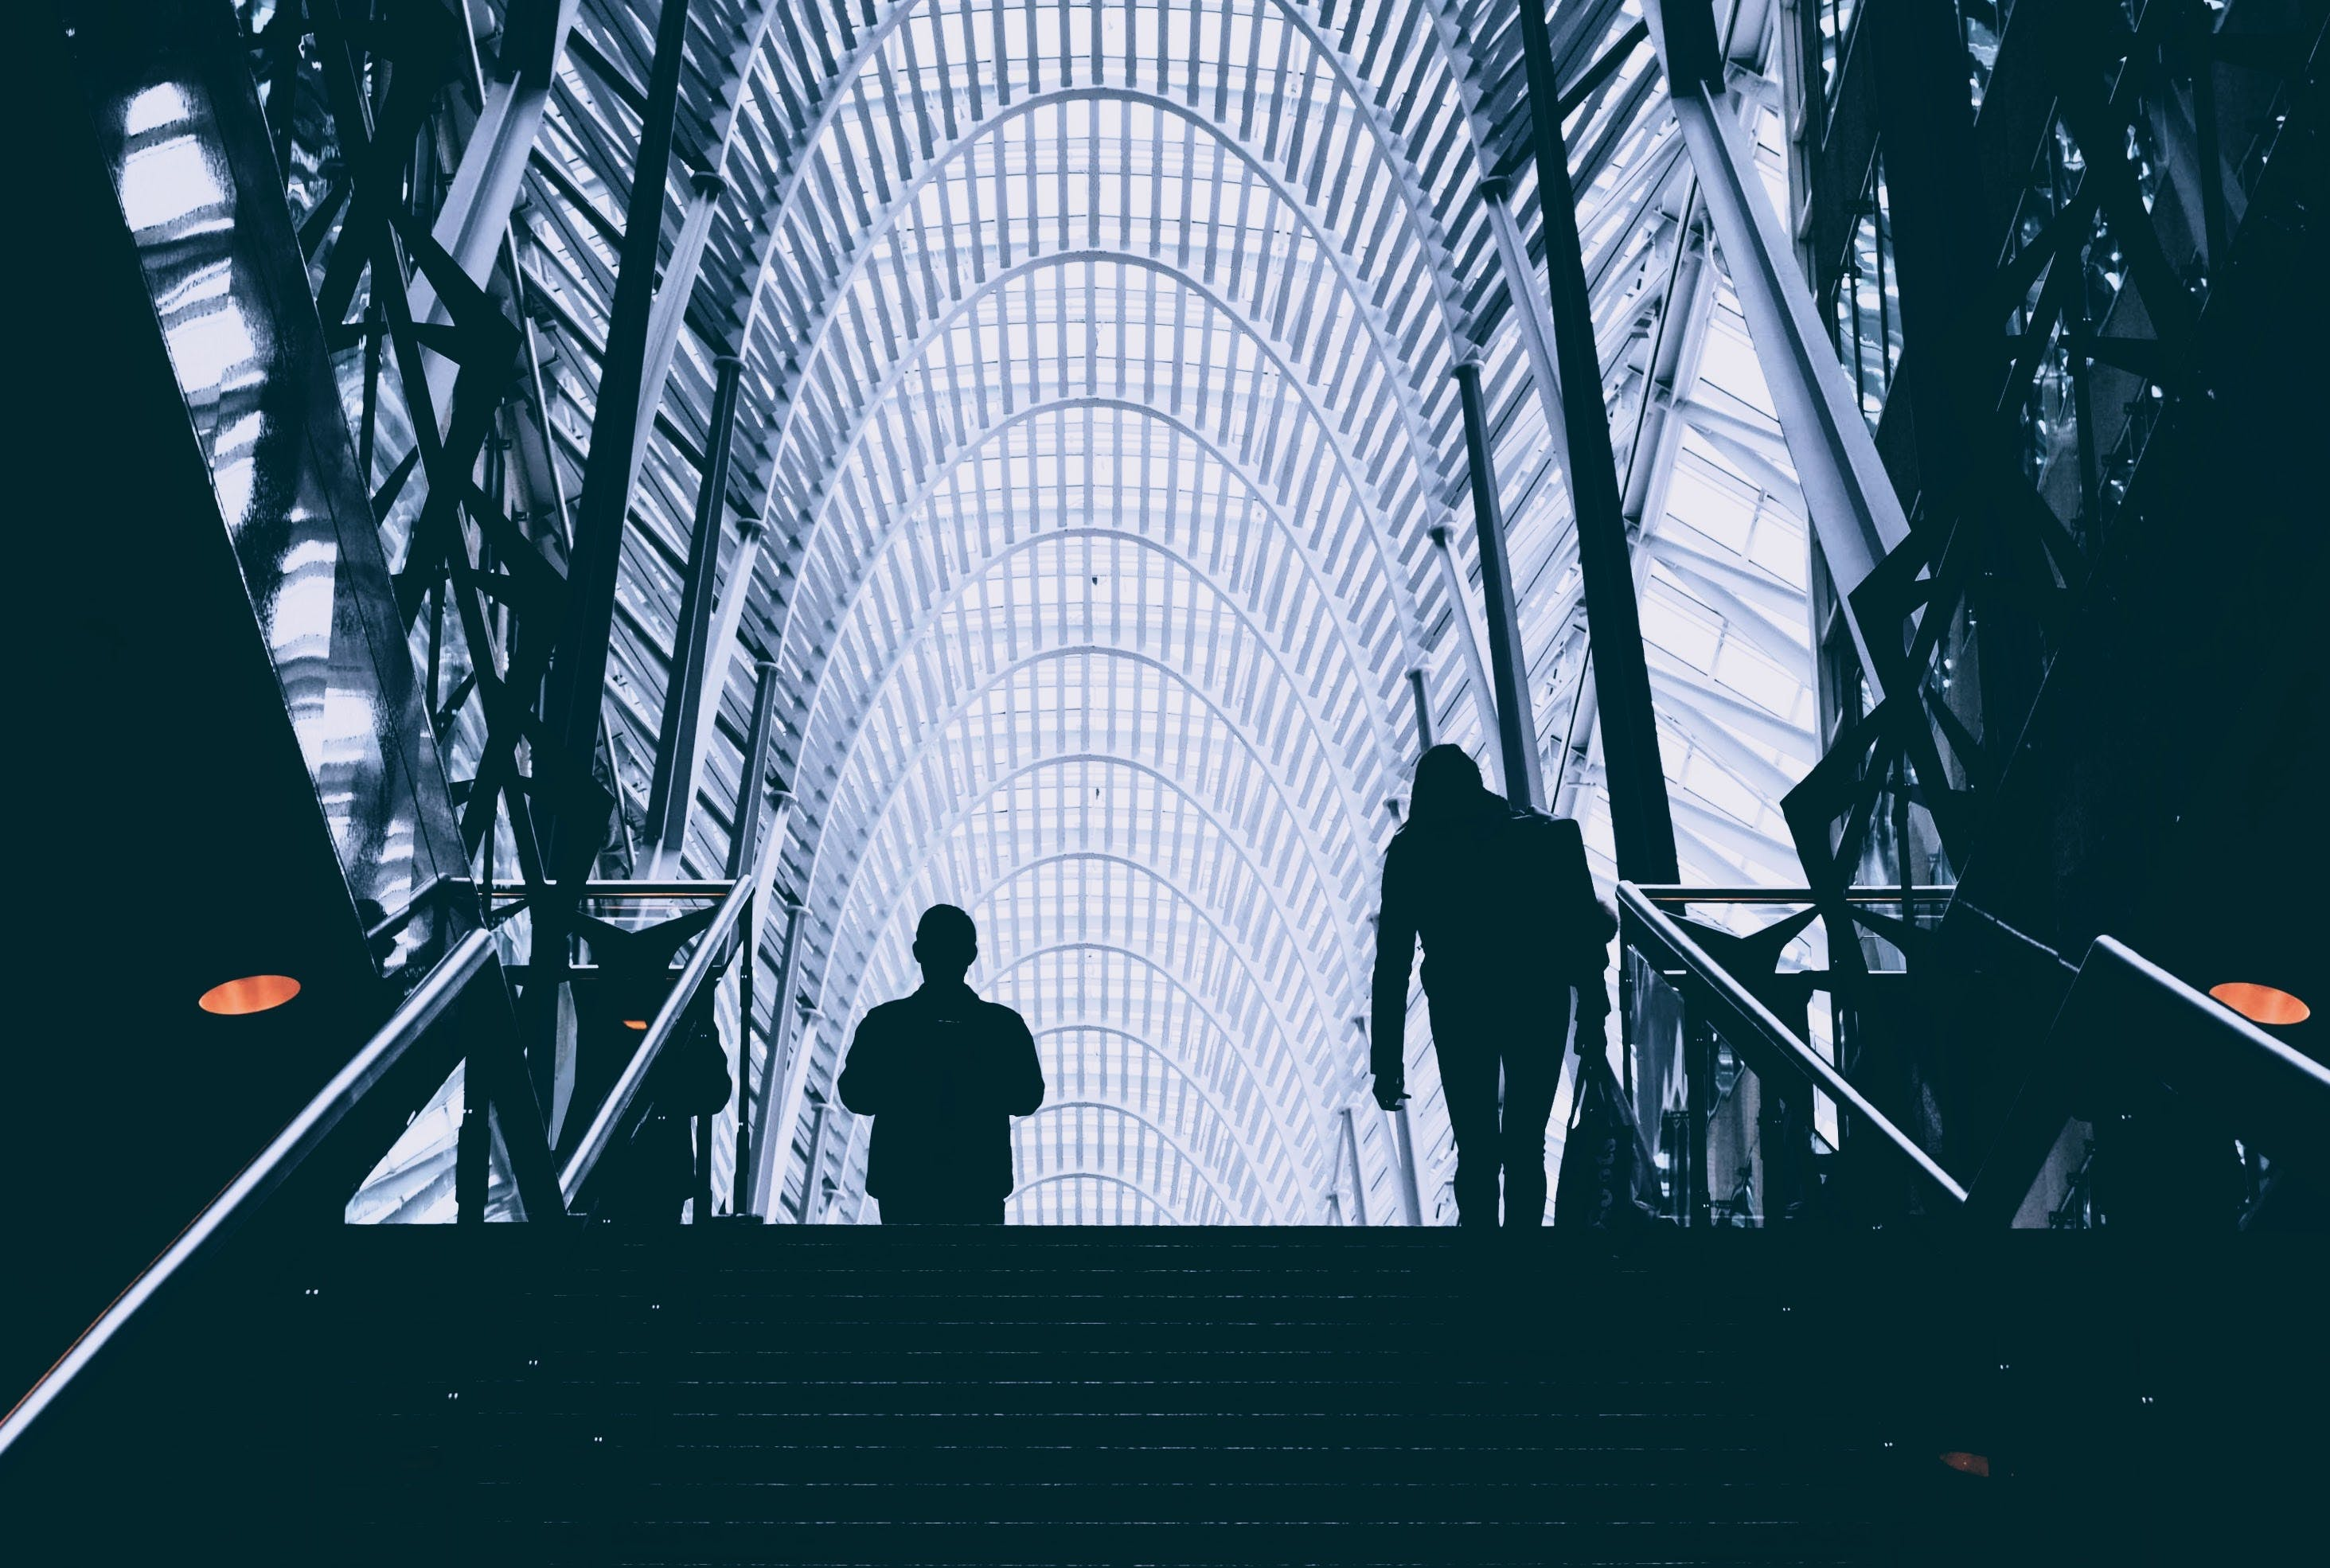 Man and Woman Walking on Stair